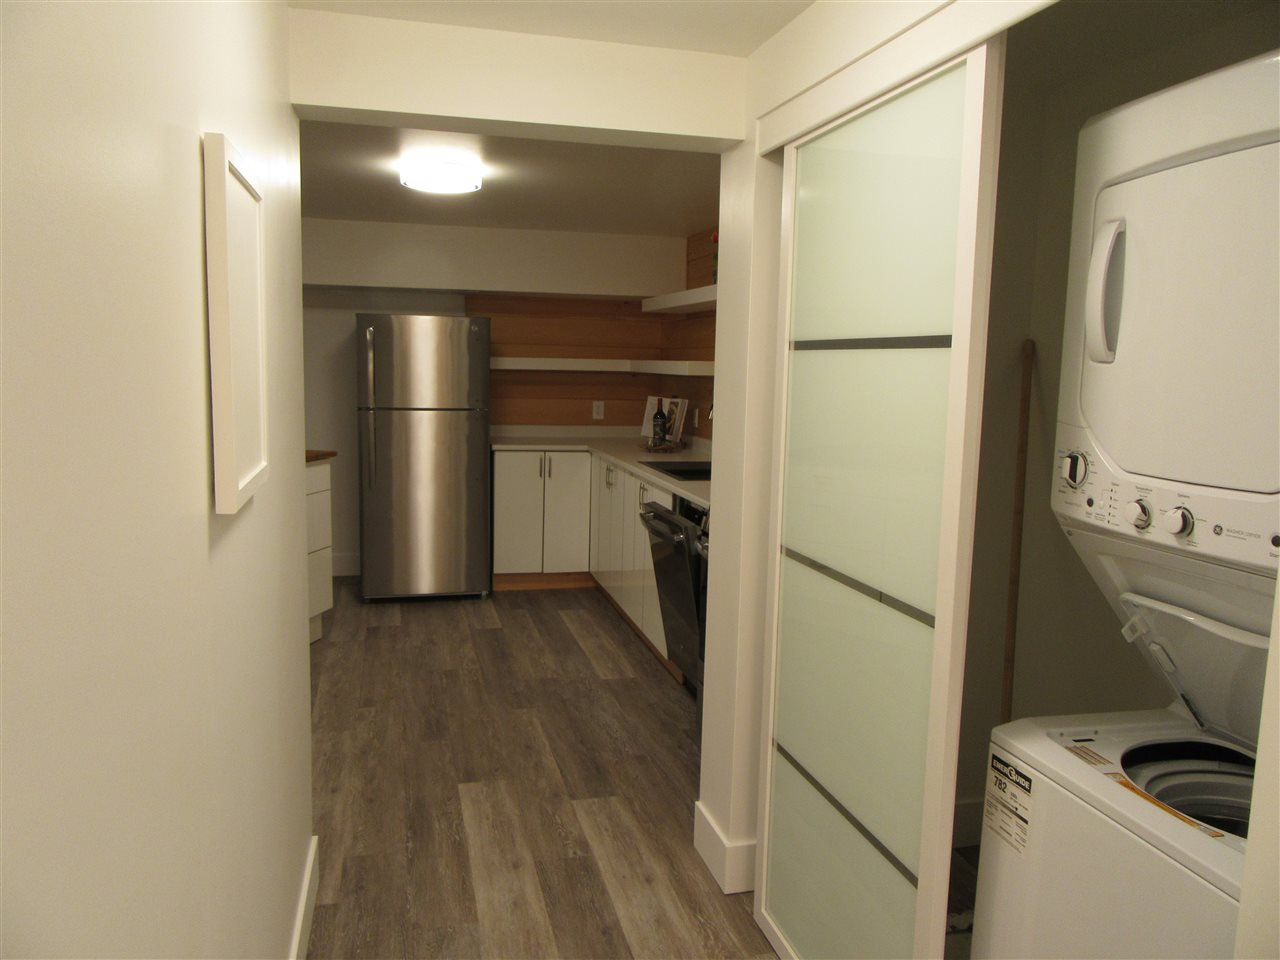 """Photo 15: Photos: 121 FREEMAN Street in Prince George: Nechako View House for sale in """"NECHAKO"""" (PG City Central (Zone 72))  : MLS®# R2493268"""